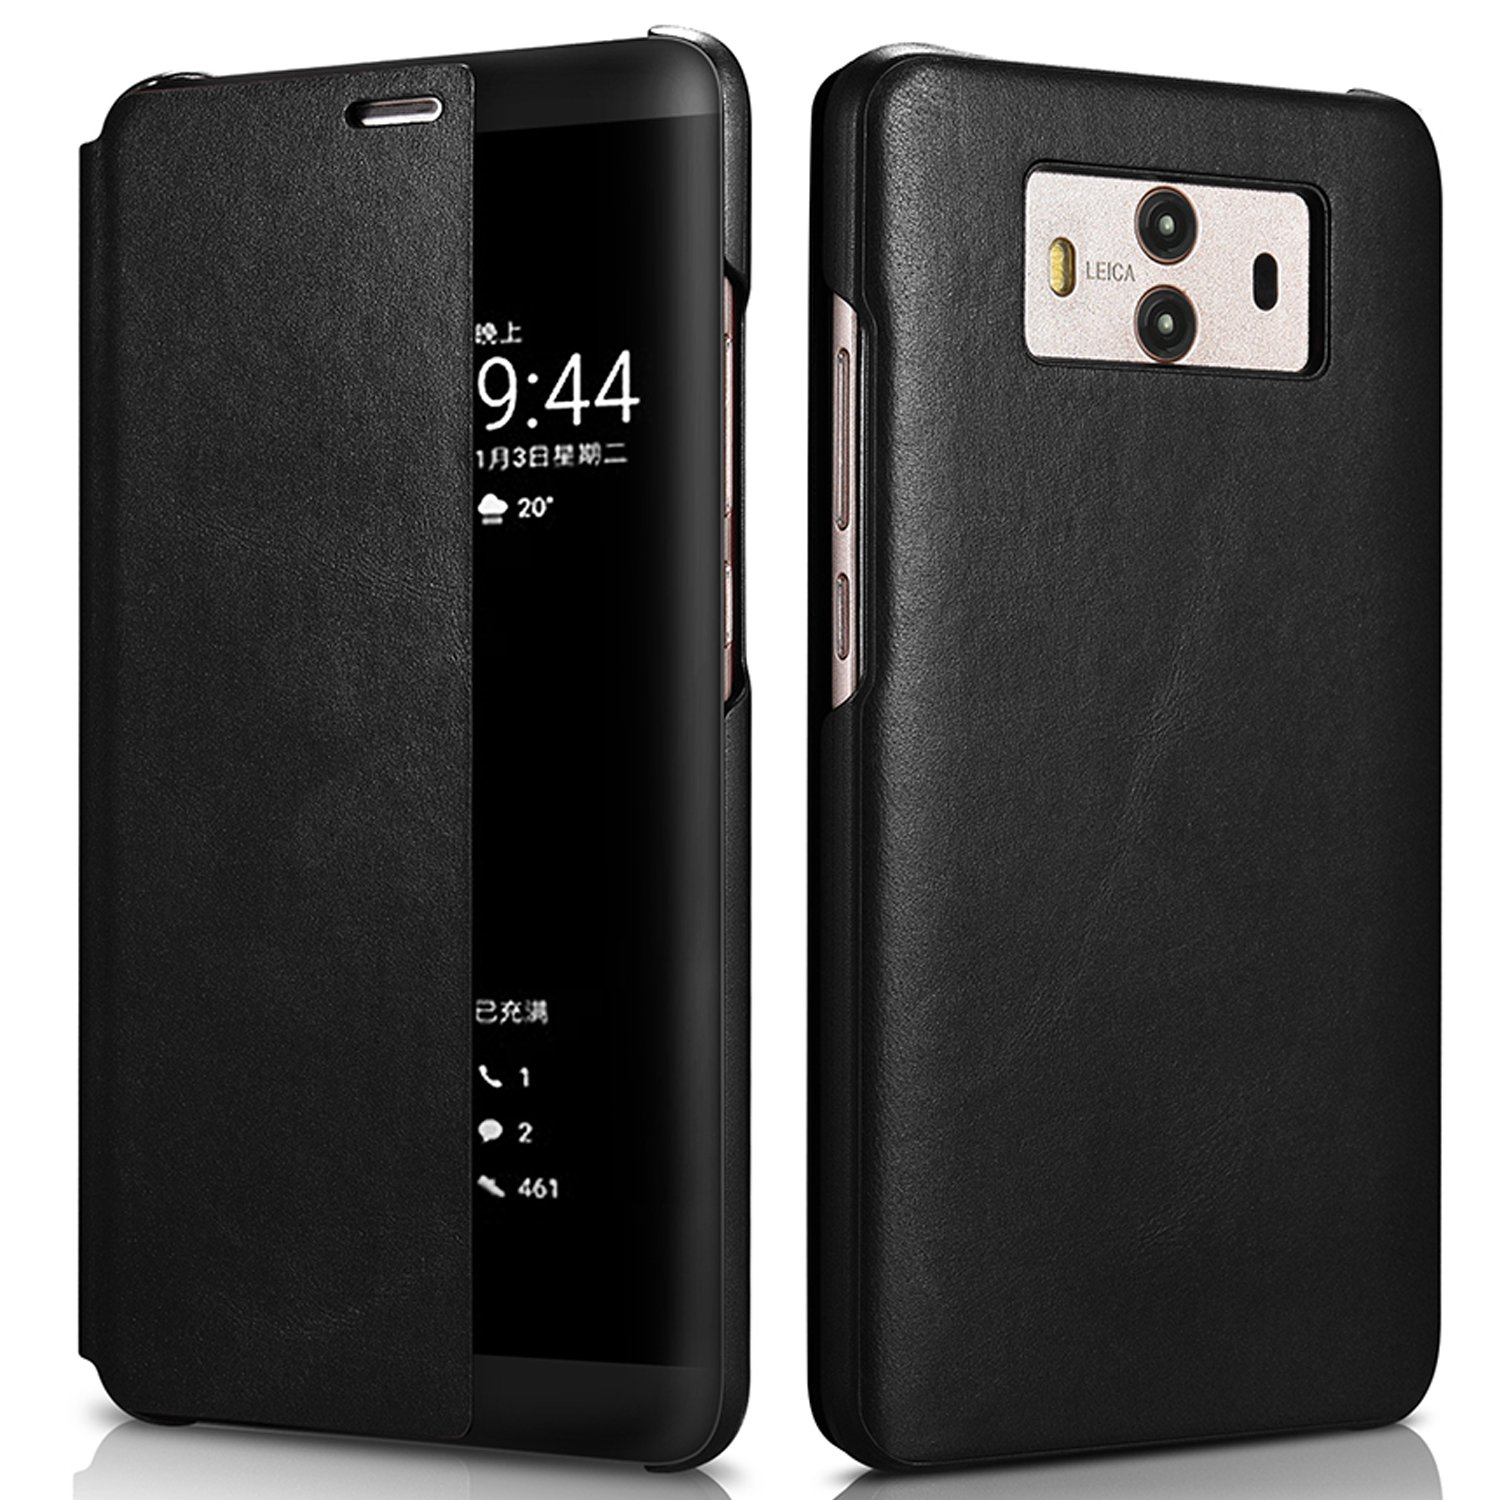 Huawei Mate10 Pro Case Aroko [Smart Window View] Genuine Leather Stand Cover Case Ultra Thin Slim Flip Wallet Case for Huawei Mate 10 Pro 2017 (Black, Mate10 Pro)